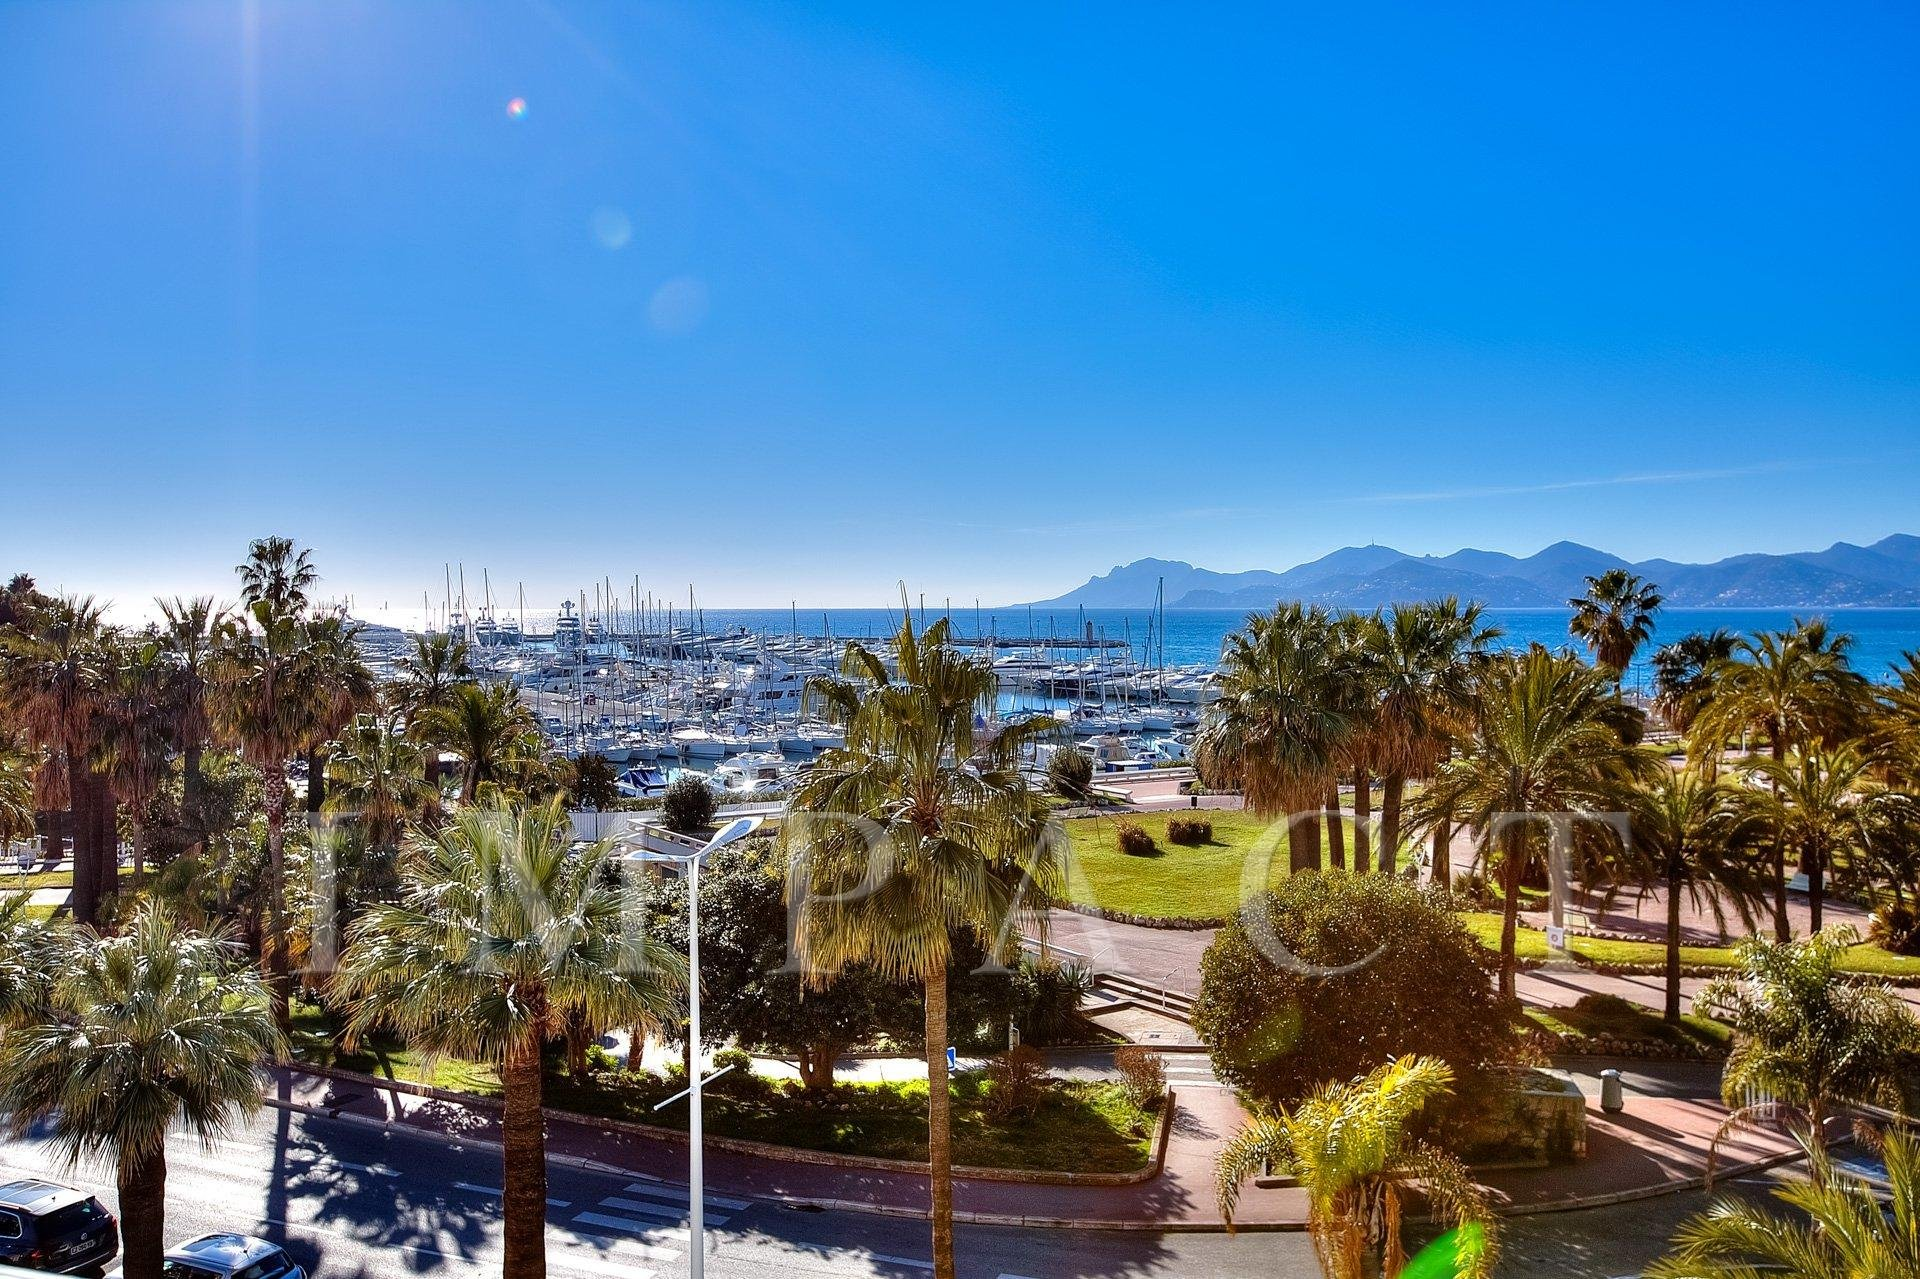 3 Bedrooms apartment to rent in Cannes Croisette, Cannes